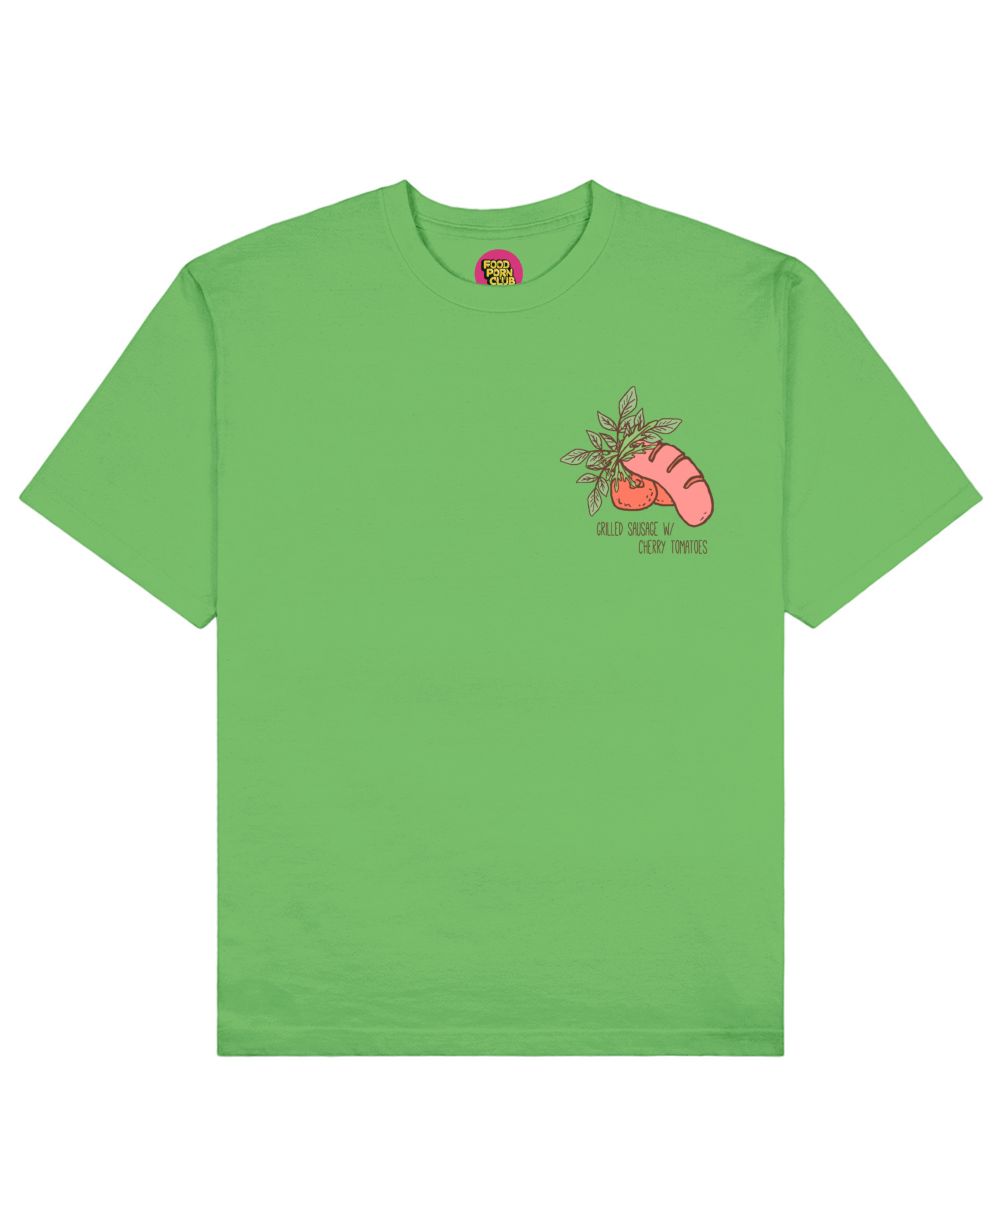 Grilled Sausage Print T-Shirt in Green - T-Shirts - FOOD PORN CLUB - BRANMA